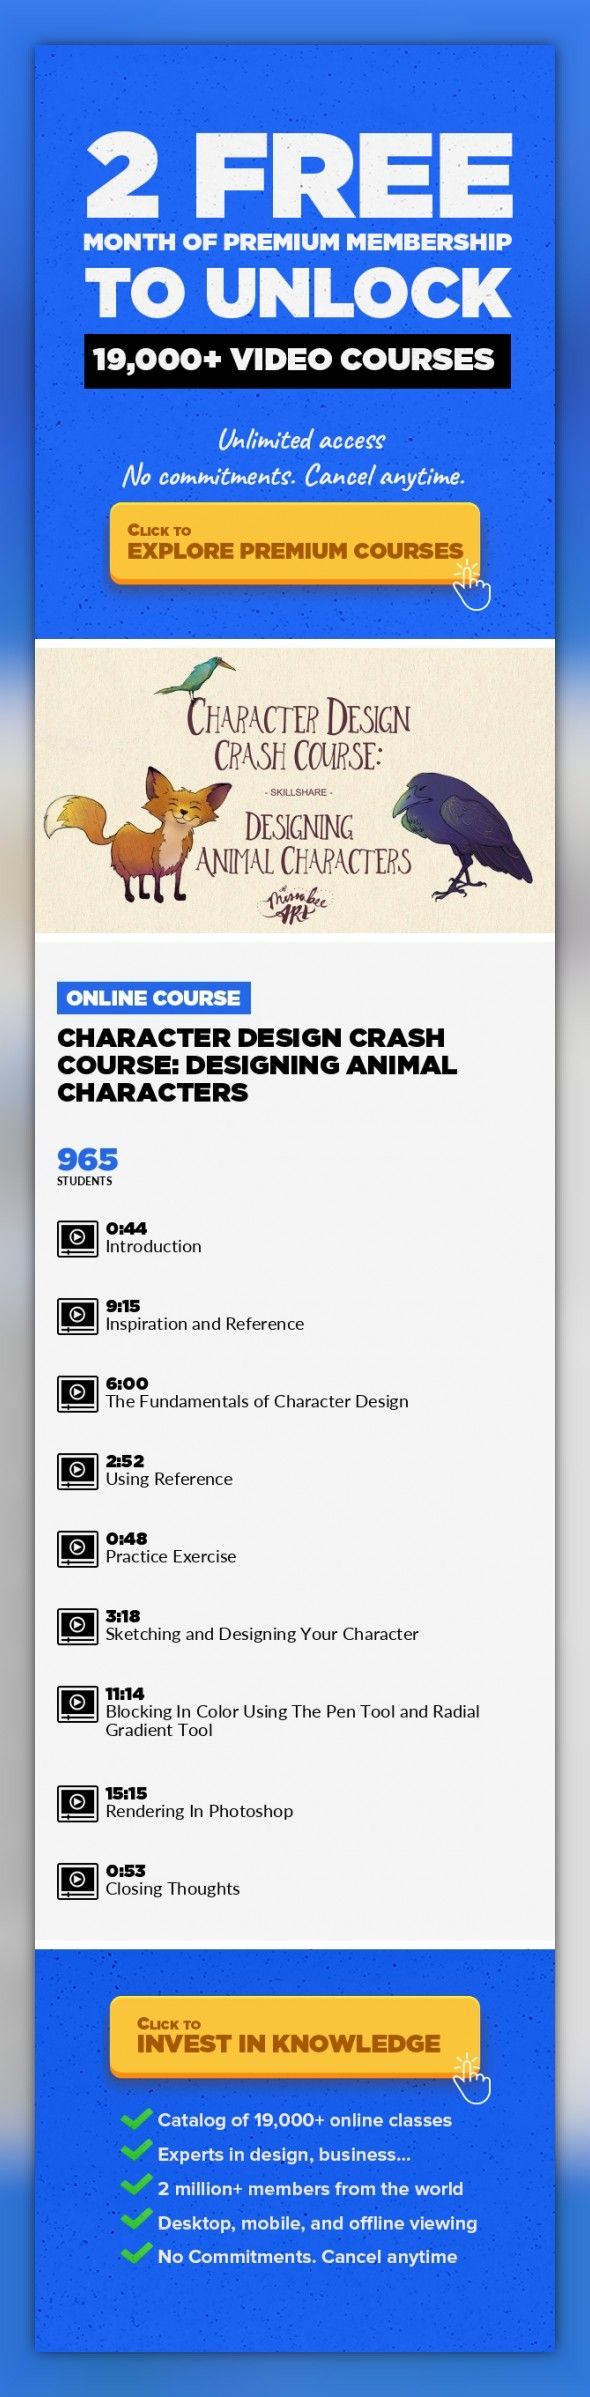 Character Design Courses University : Character design crash course: designing animal characters